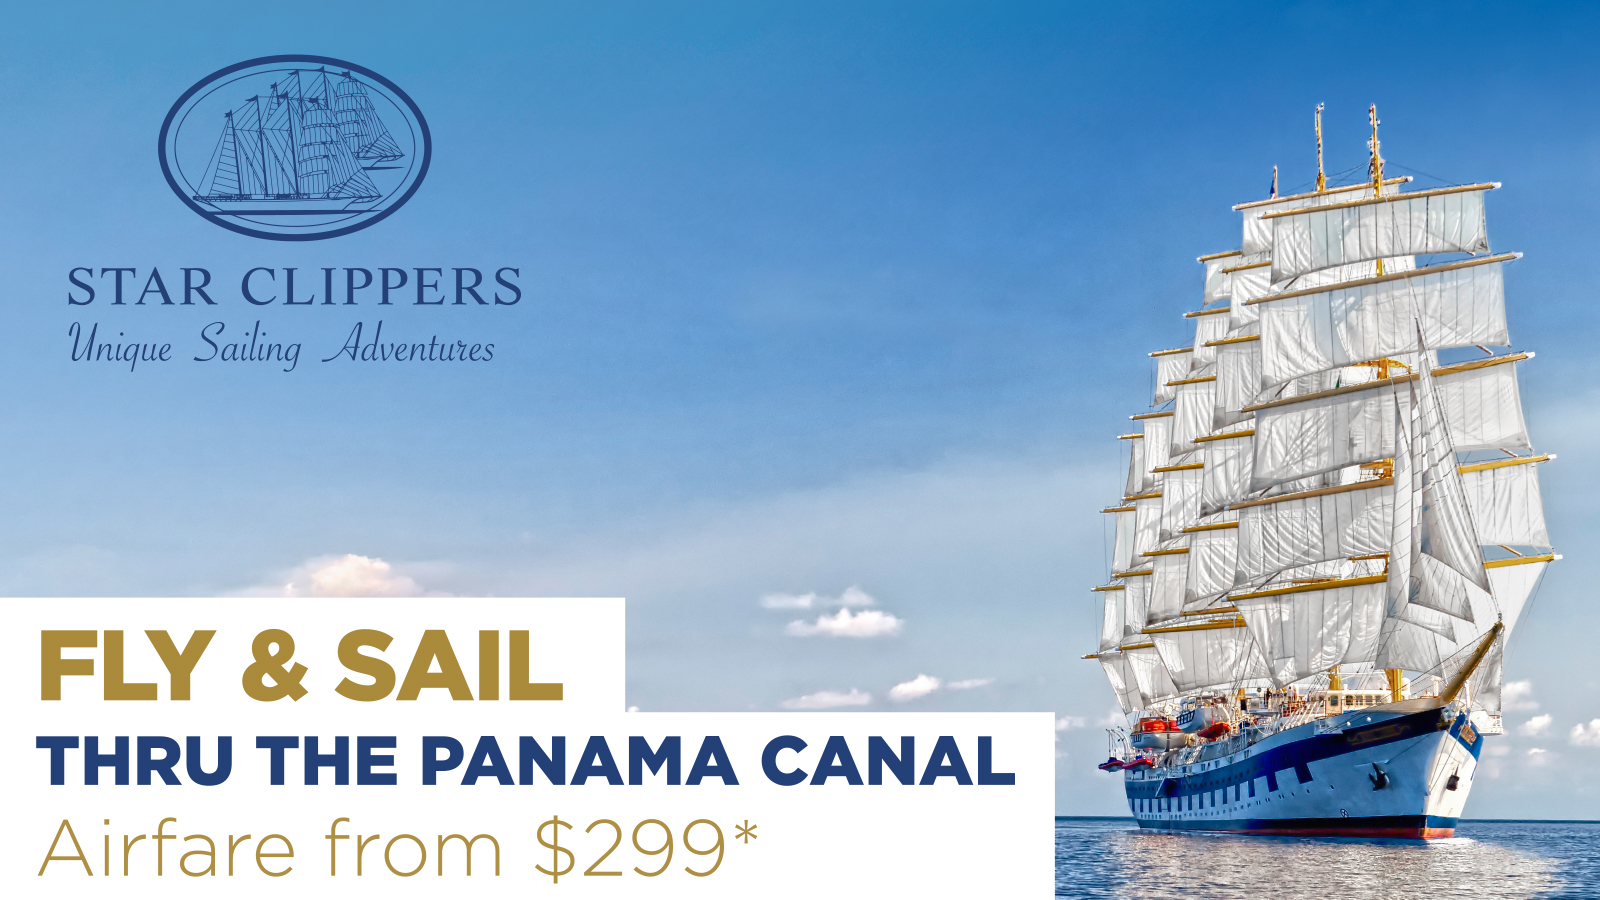 Star Clippers FLY & SAIL FLY AND SAIL THROUGH THE PANAMA CANAL